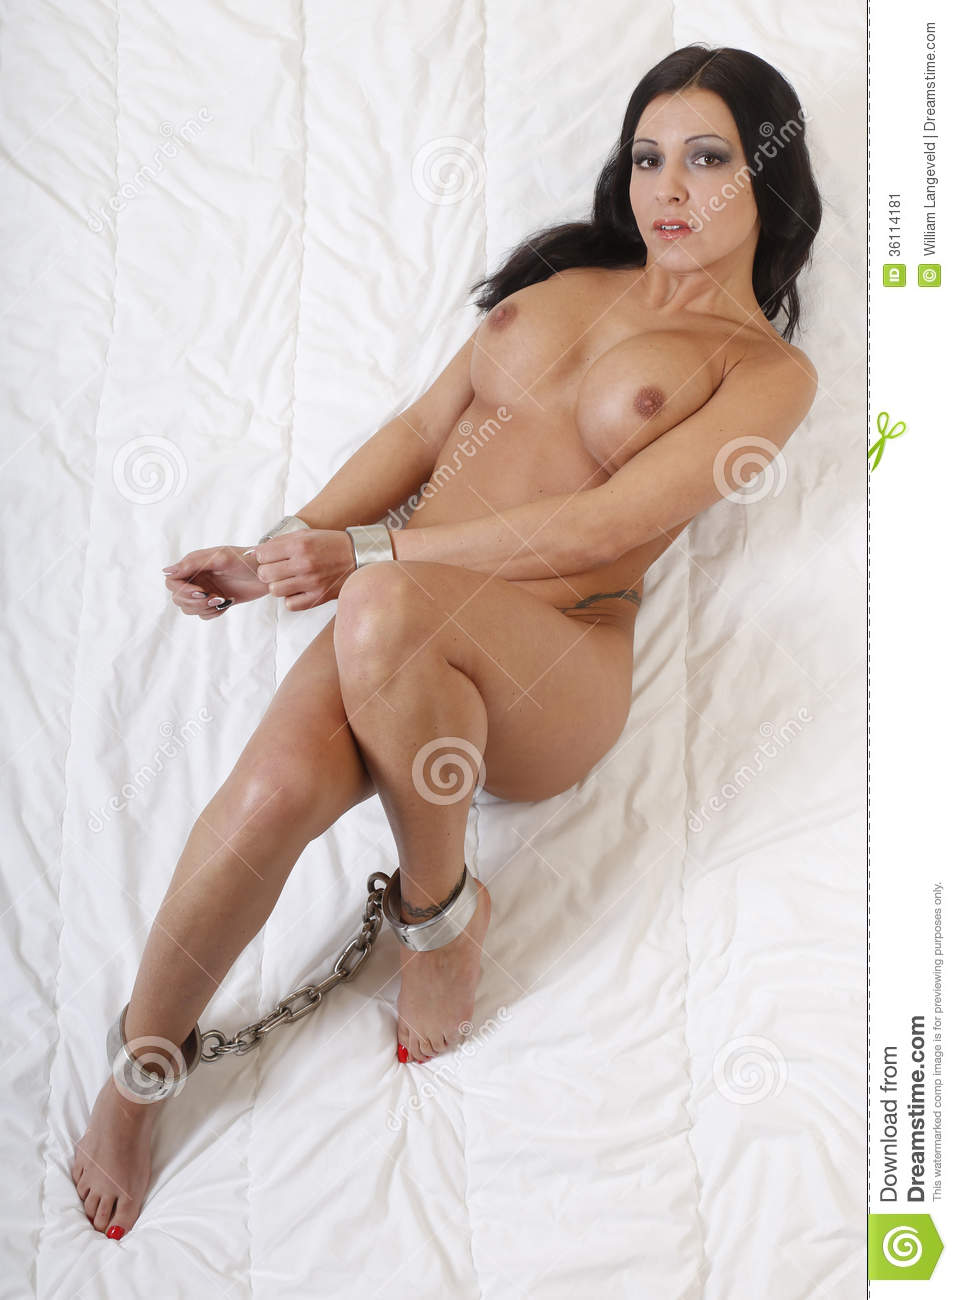 Beautful Nude Or Naked Woman Handcuffed Stock Image -3443